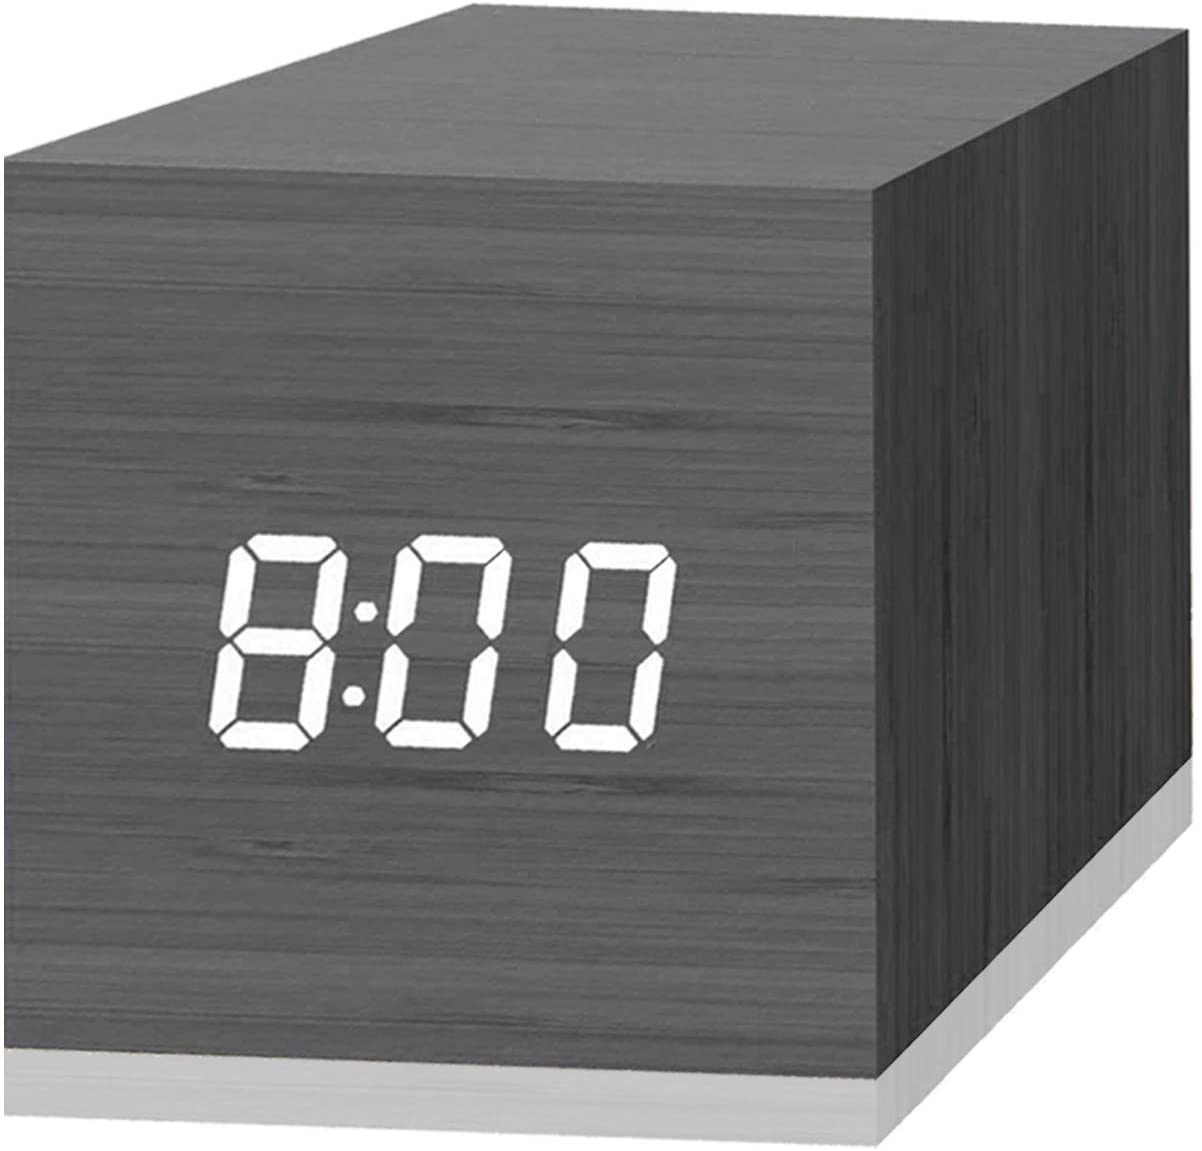 Digital Alarm Clock With Wooden Electronic Led Time Display 3 Dual Plus Alarm 2 5 Inch Cubic Small Mini Wood Made Electric Clocks For Bedroom Bedside Desk Black Home Audio Theater